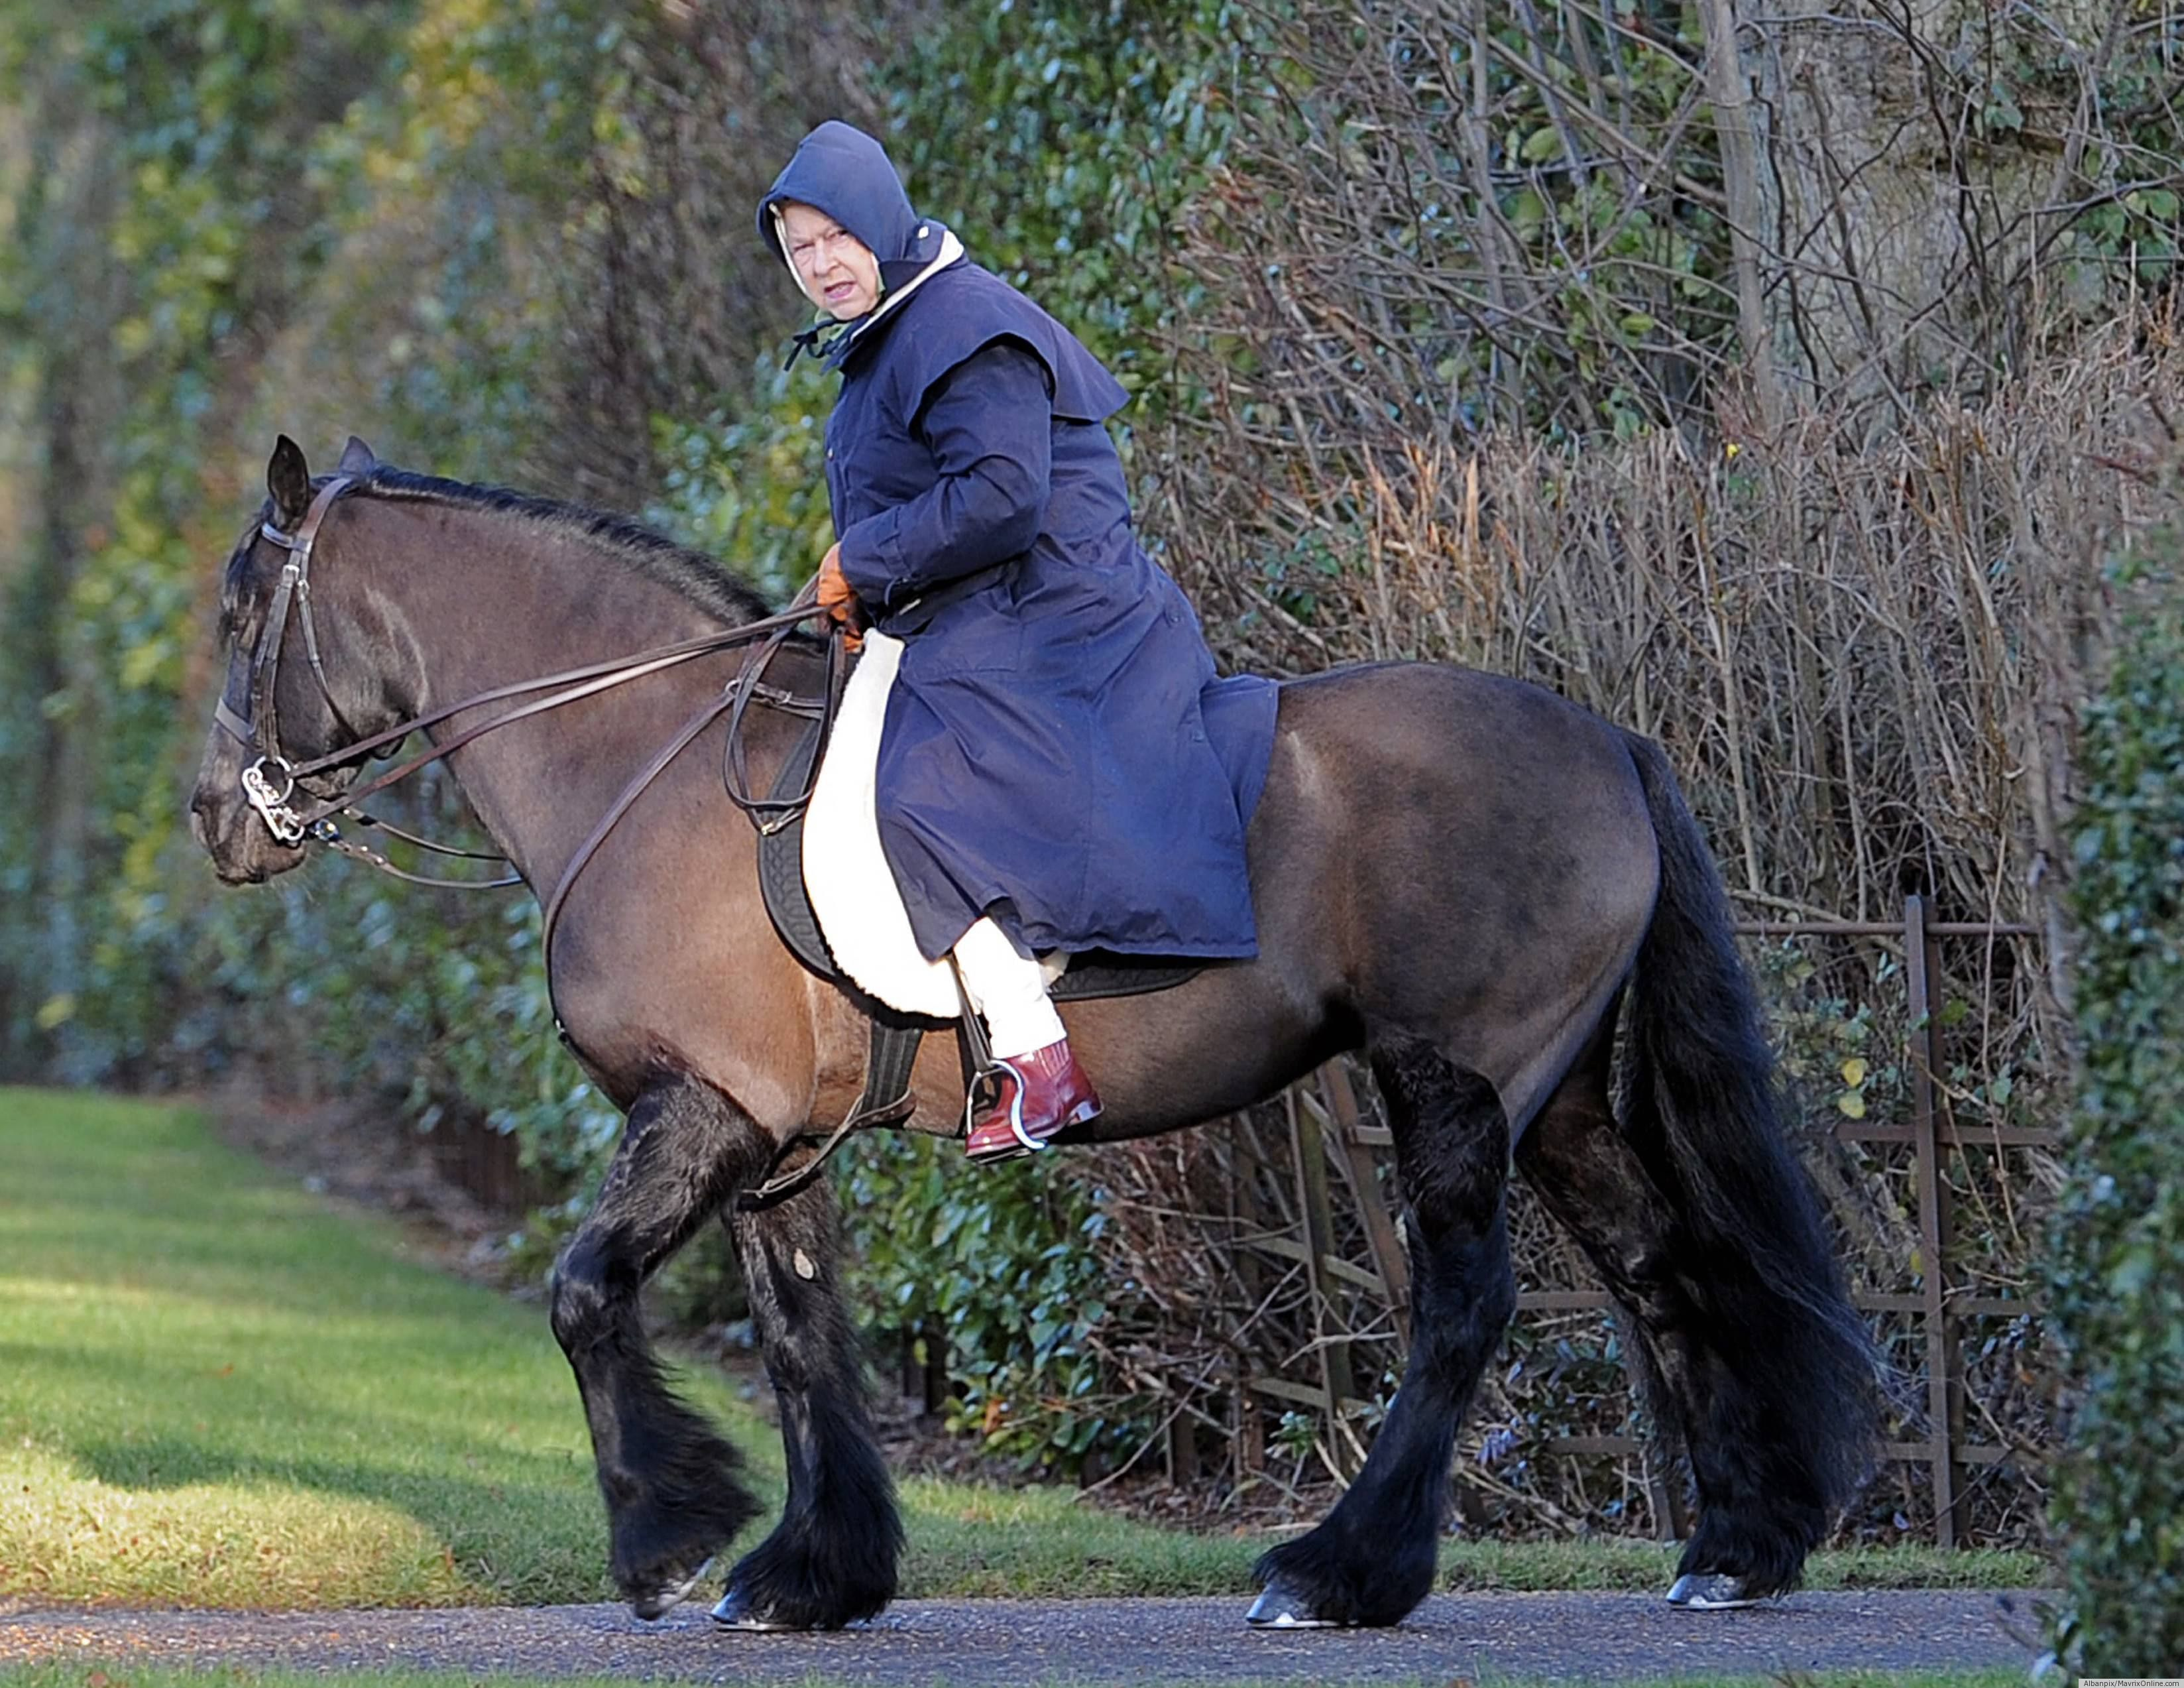 2012 - The Queen - still riding at 85